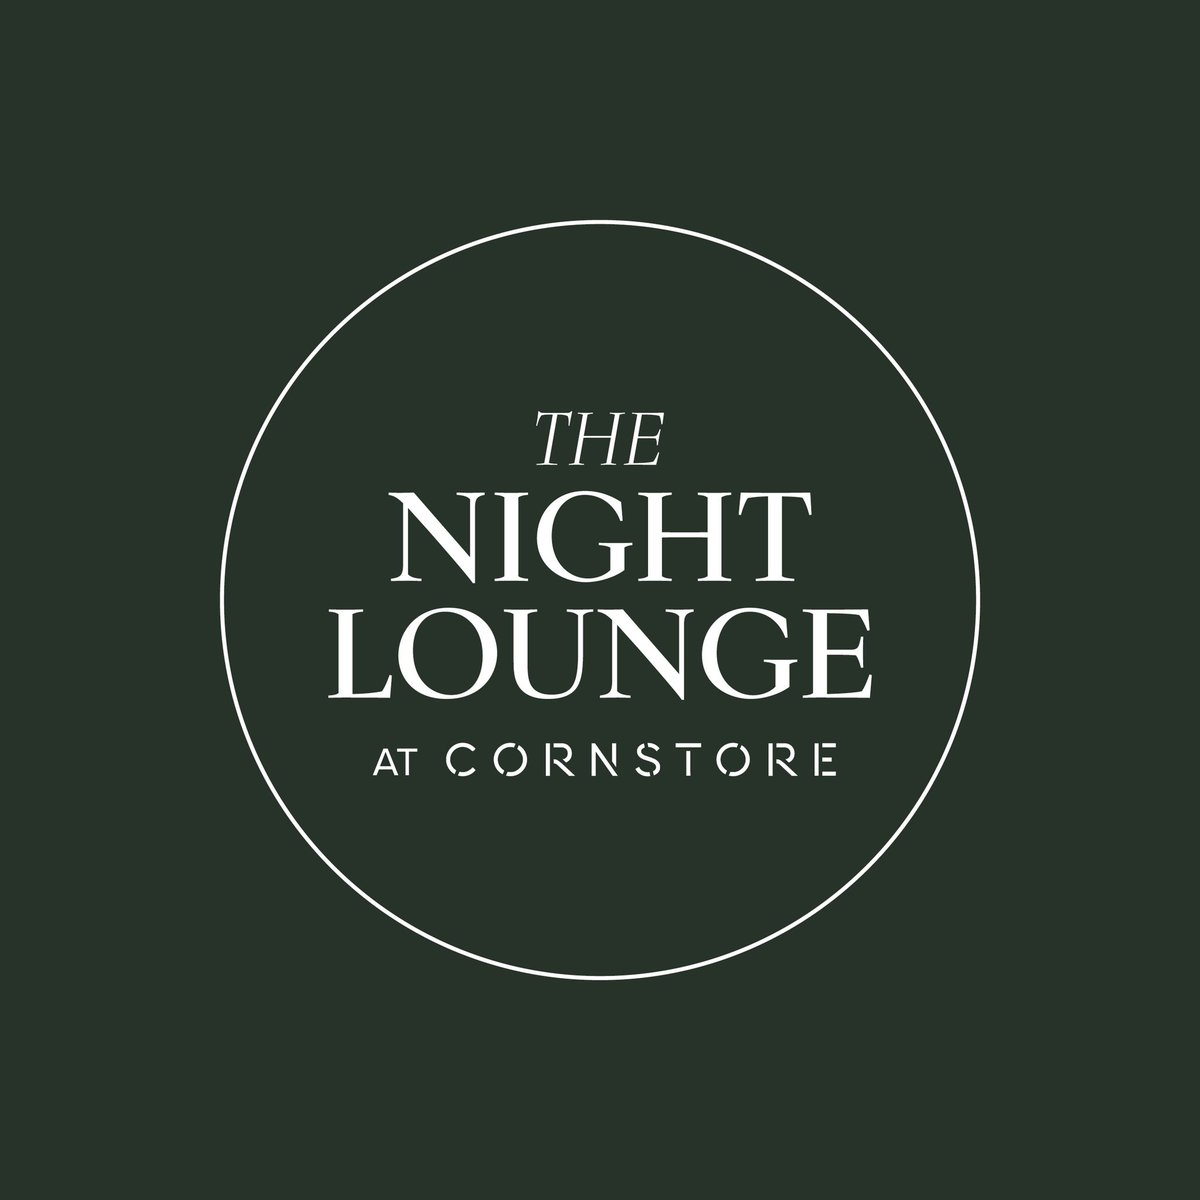 Thrilled to announce.. The. NIGHT LOUNGE. every weekend from 10.30pm. . Pop in with friends to enjoy Nibbles with a nice bottle of Wine or your favourite Cornstore Award-winning Cocktail. . Bookings limerick@cornstore.com  Or 061 609 000 . #NightLounge  #cocktails #wines #pizza https://t.co/T2heYA7Y4j